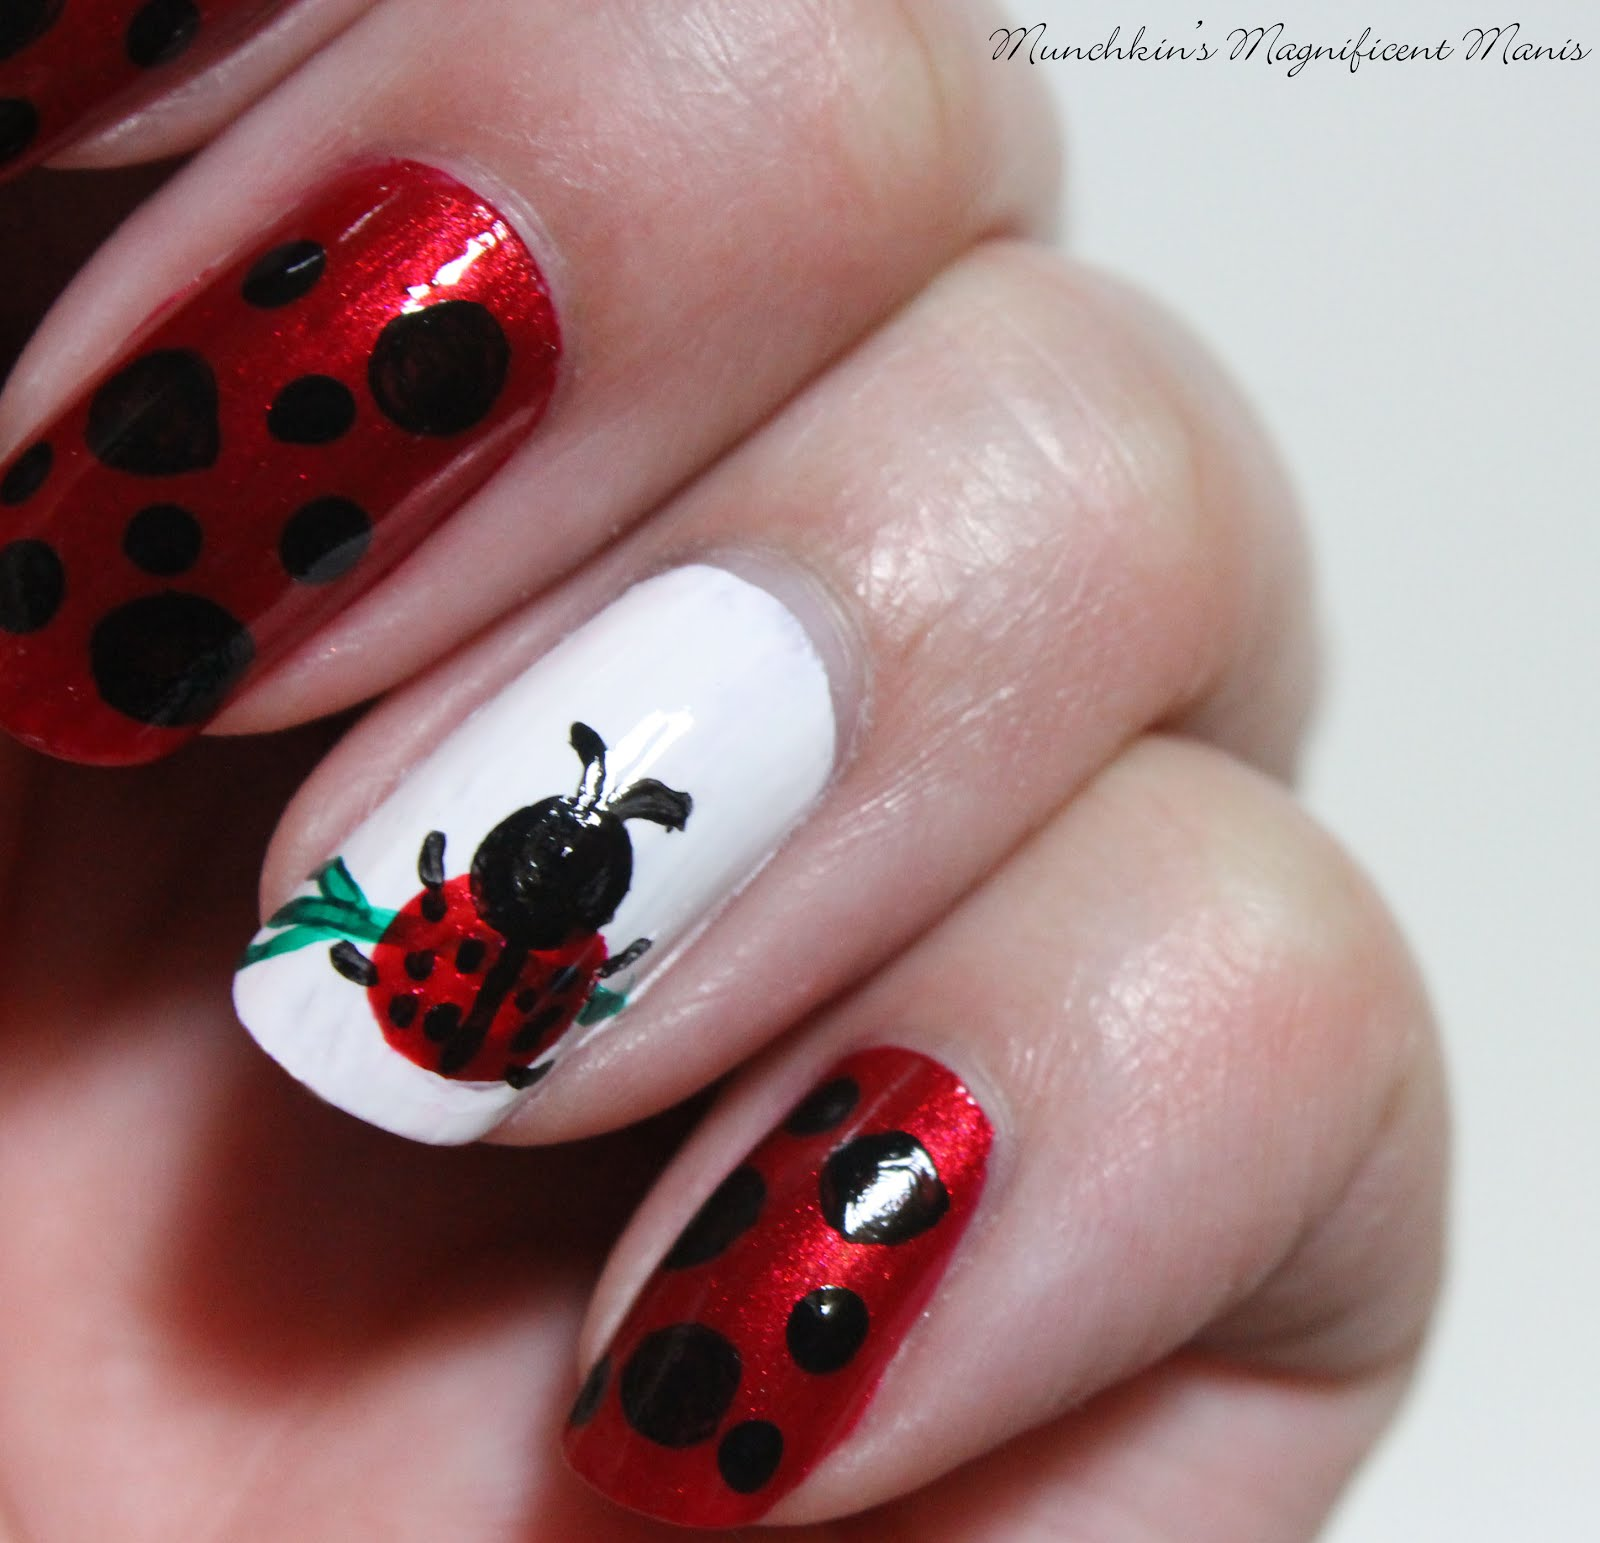 Munchkins Magnificent Manis: Act Like a Lady- Ladybug ...